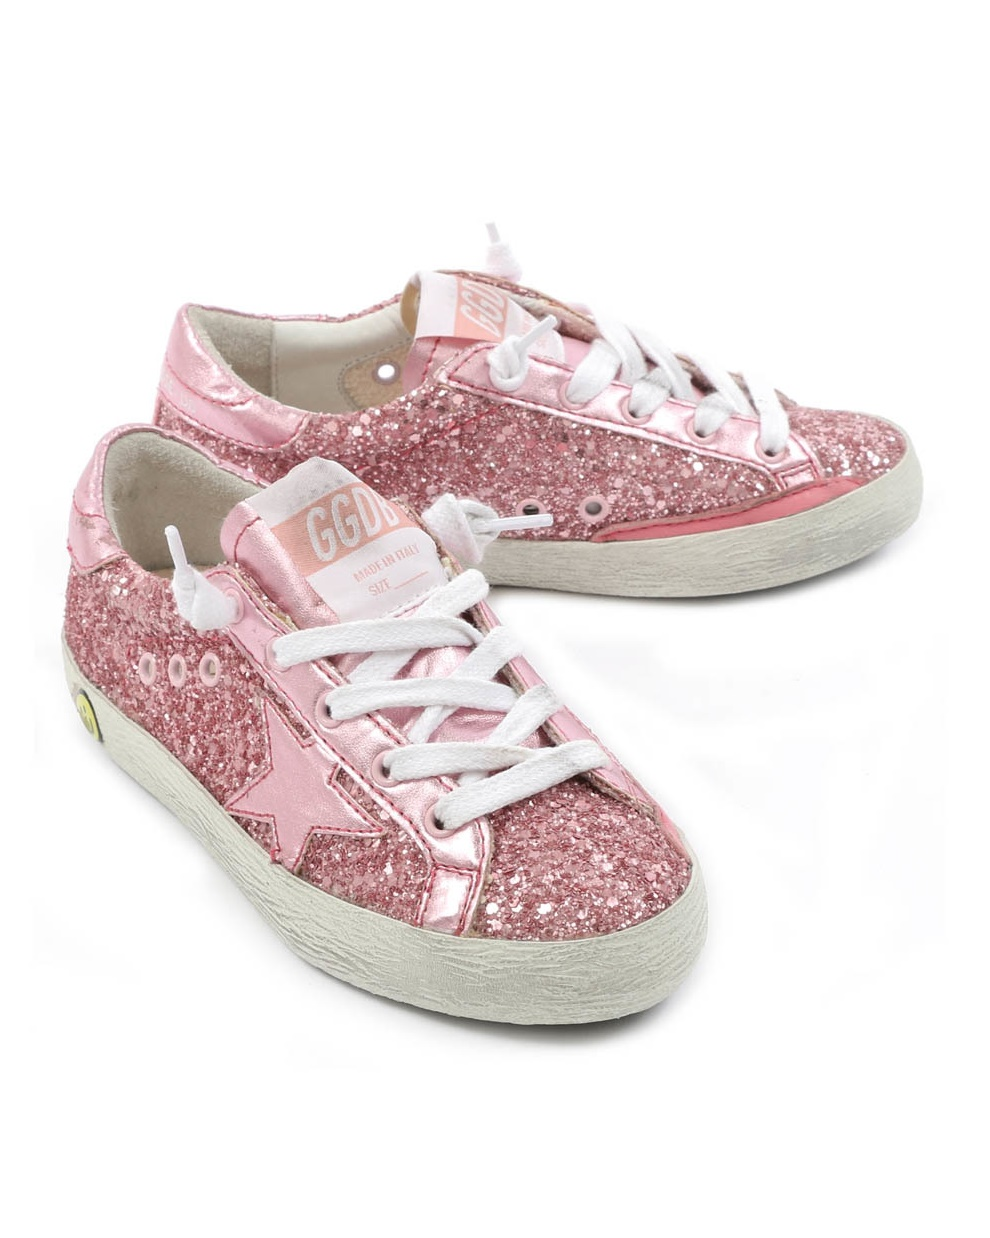 3081f36fed382 Home   Shoes   Sneakers   Superstar Sneakers Pink Glitter ...